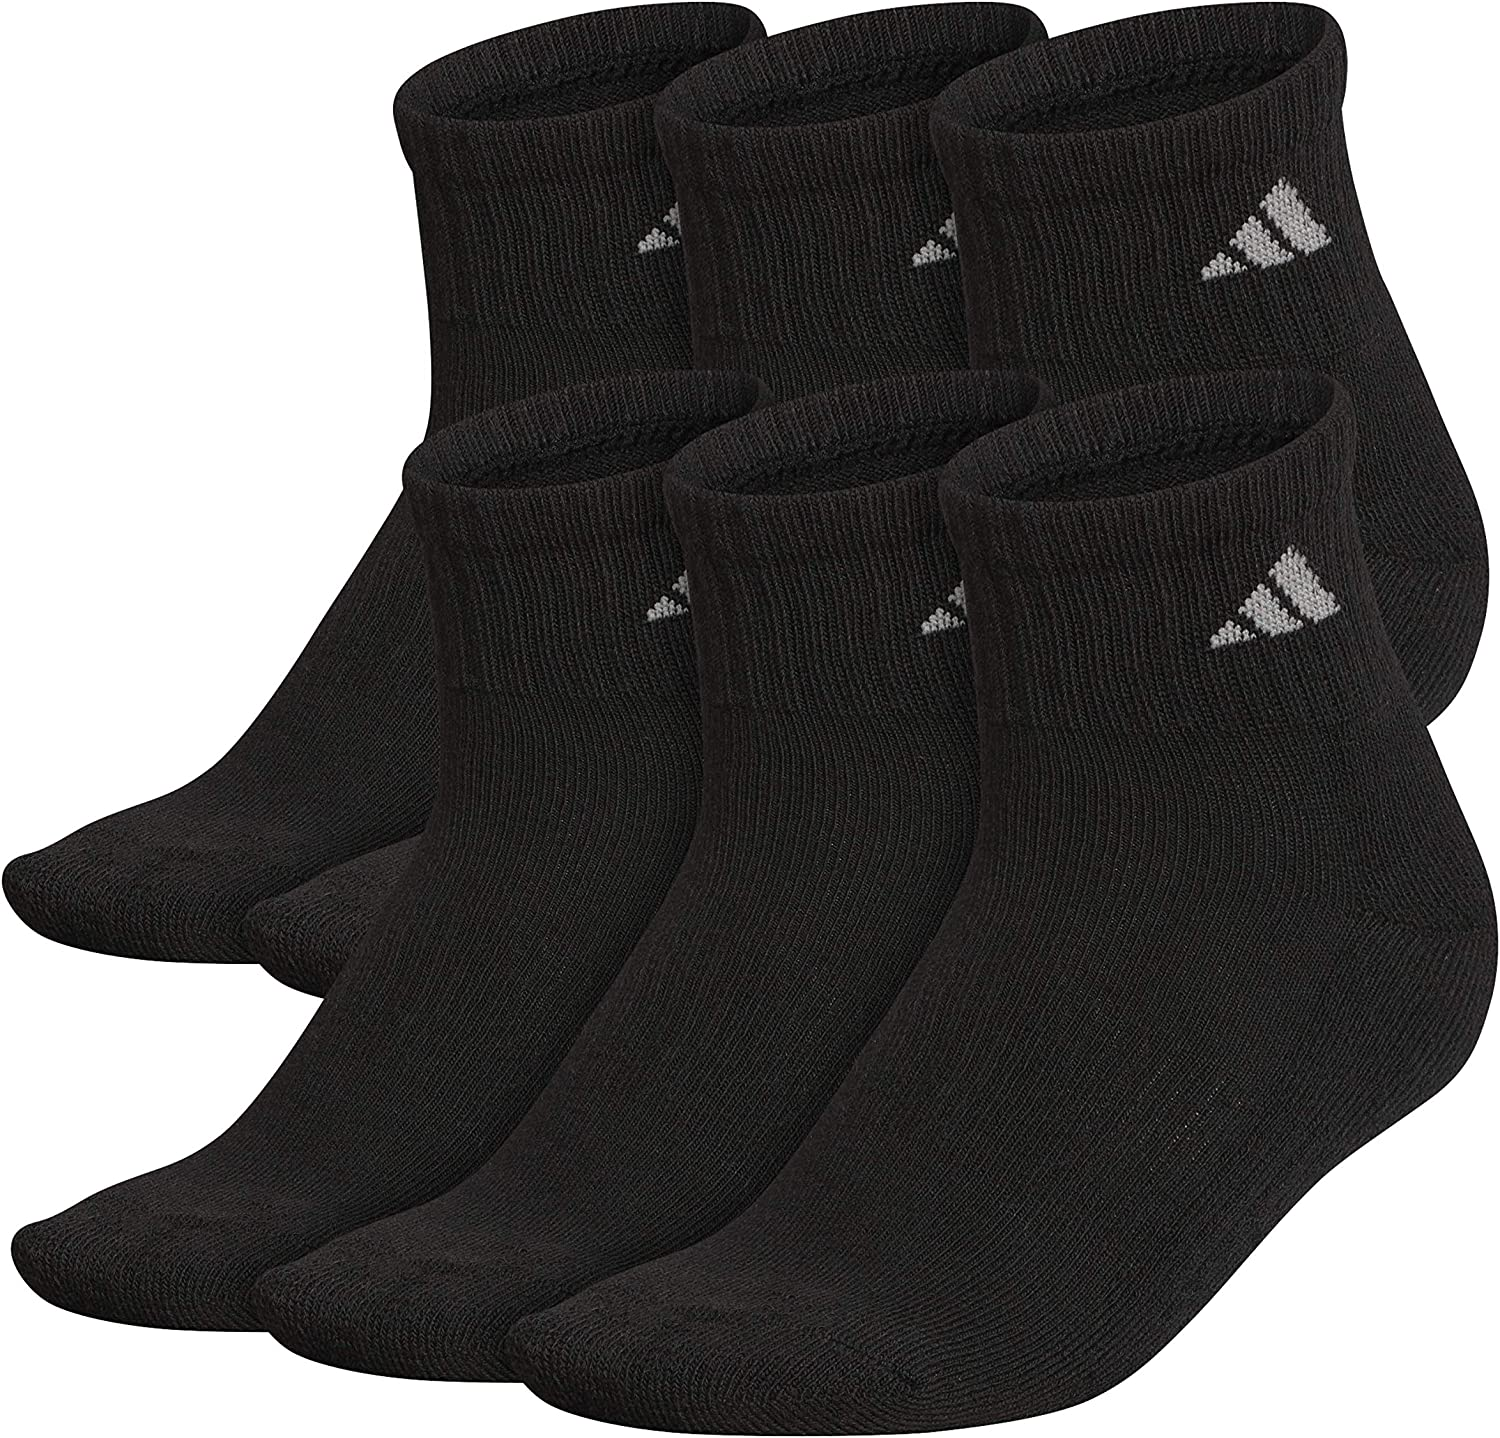 Ranking TOP17 adidas Women's Athletic Cushioned Cheap mail order shopping Quarter Arch With Socks Compre